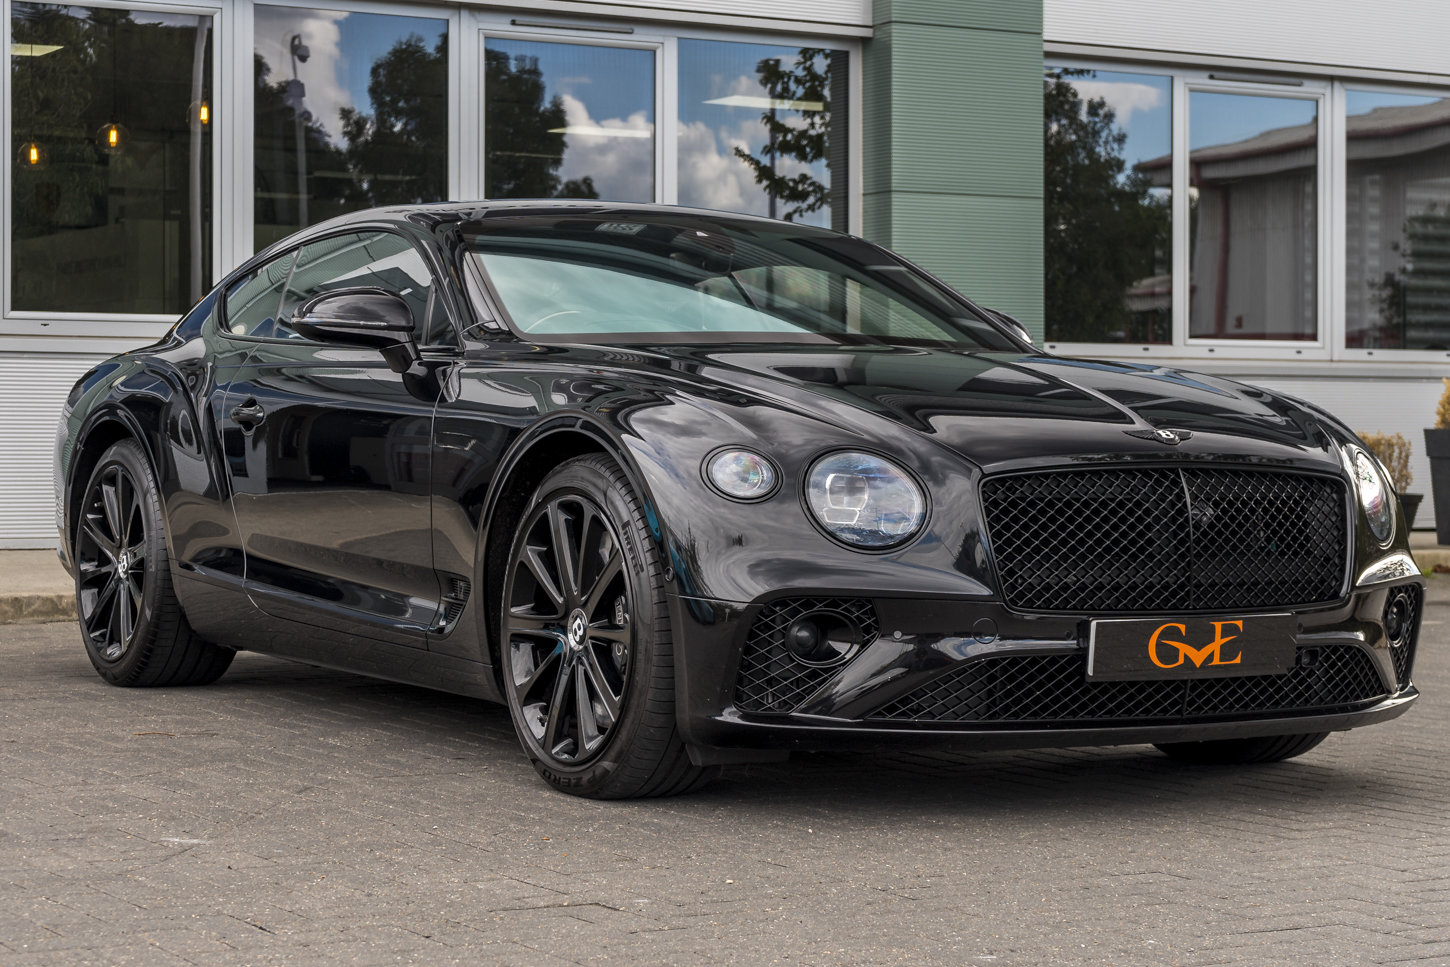 Bentley Continental GT 2019 For Sale (picture 2 of 6)